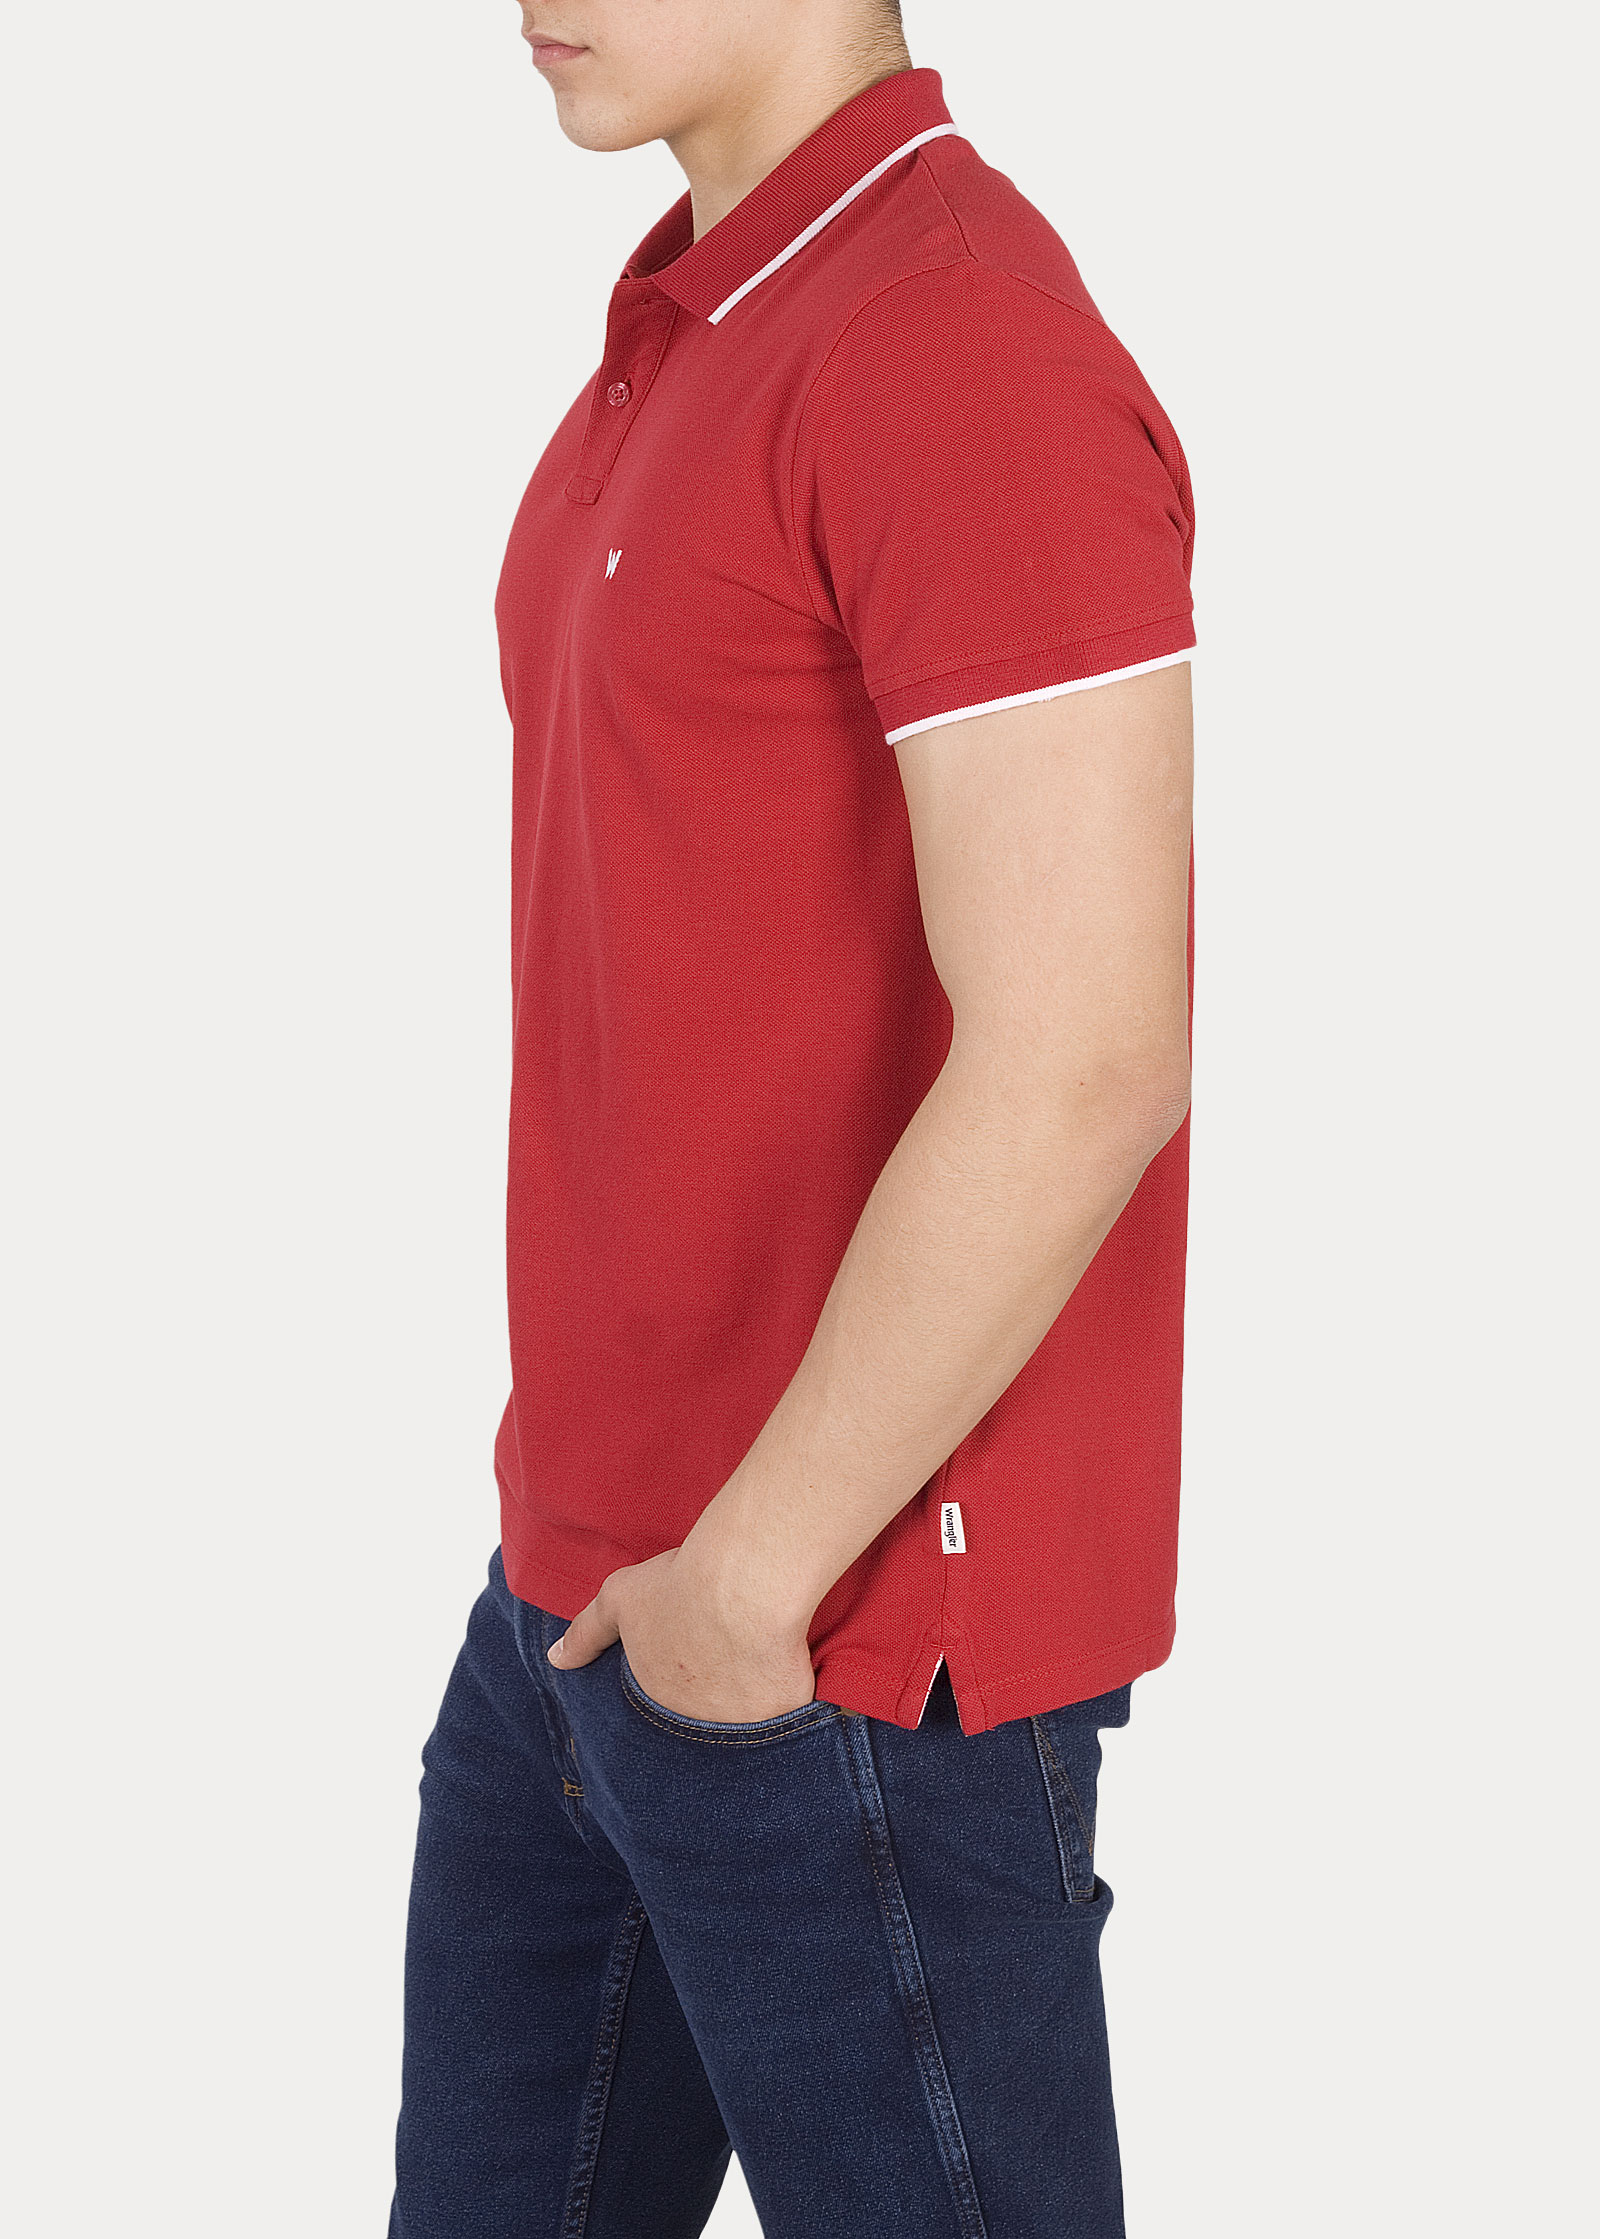 Wrangler® Polo - Scarlet Red - elements